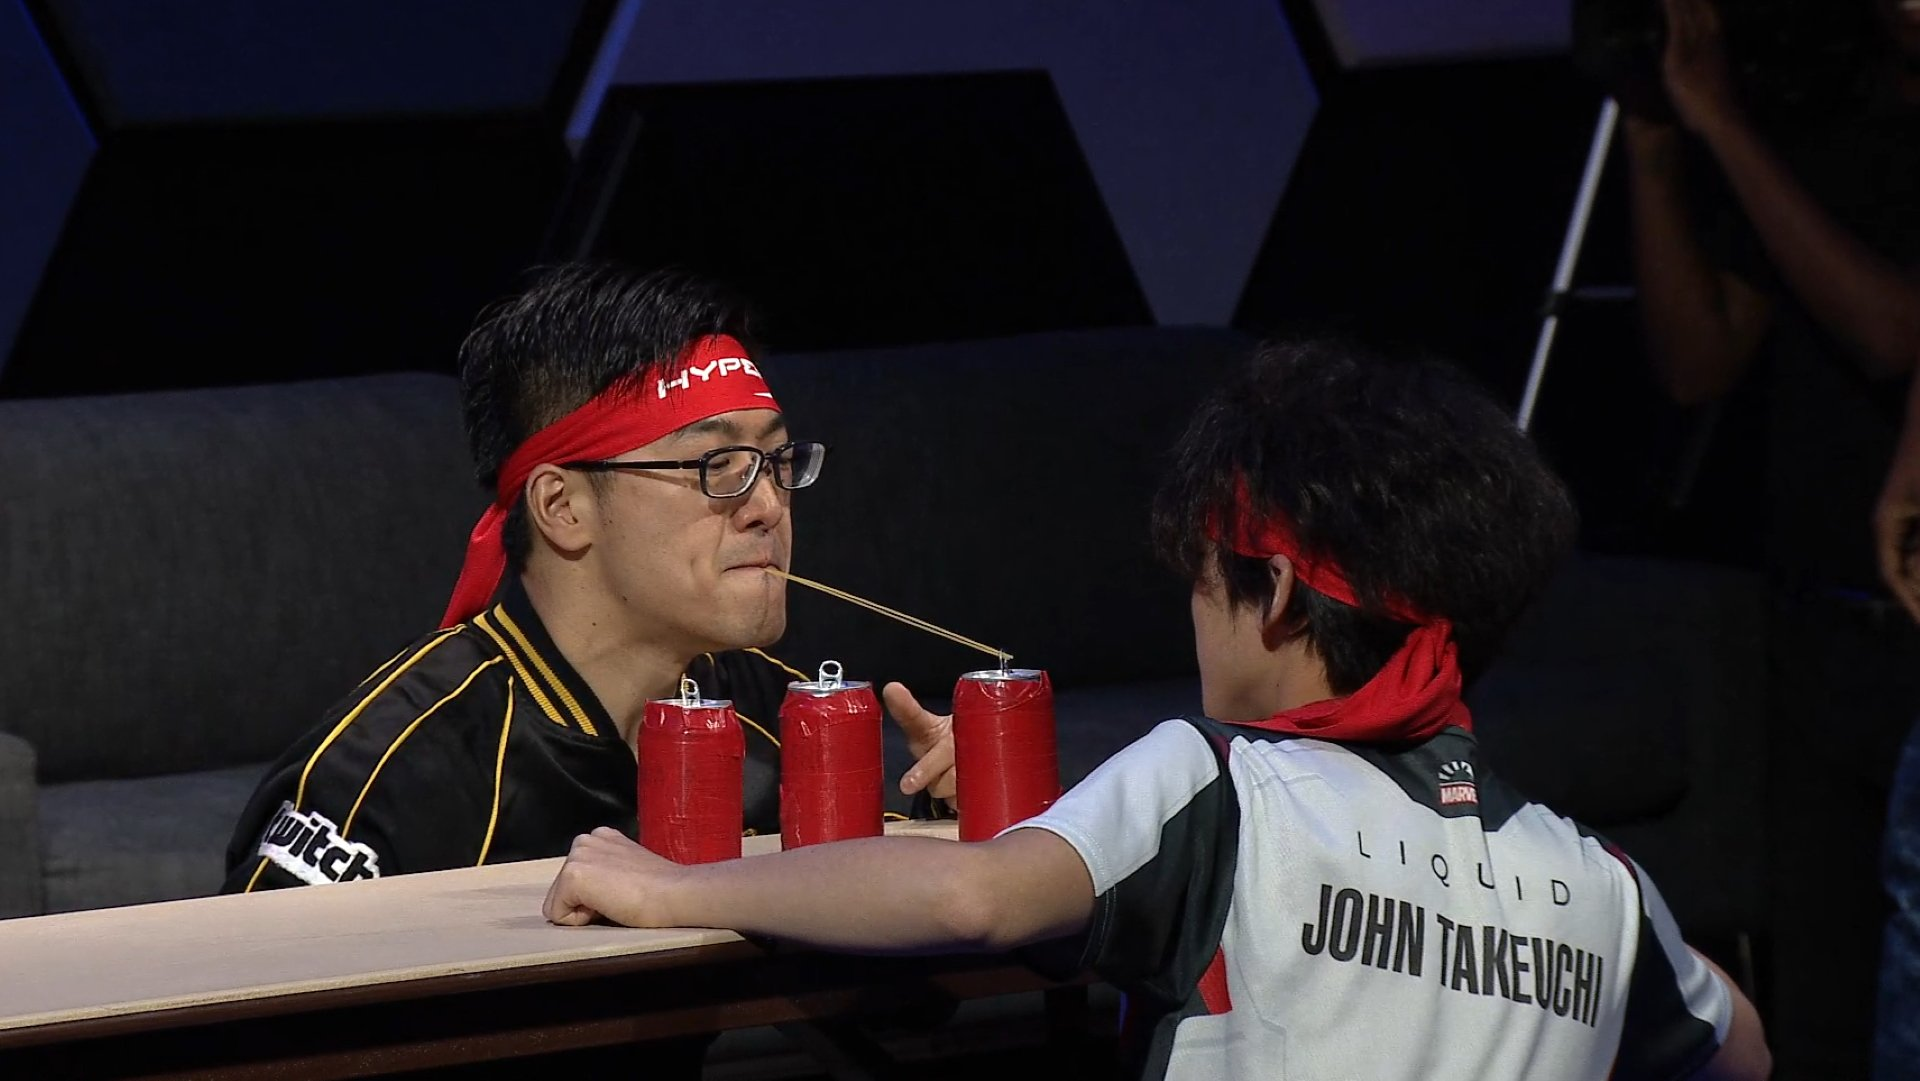 the best moments from the HyperX Showdown: Knock Out